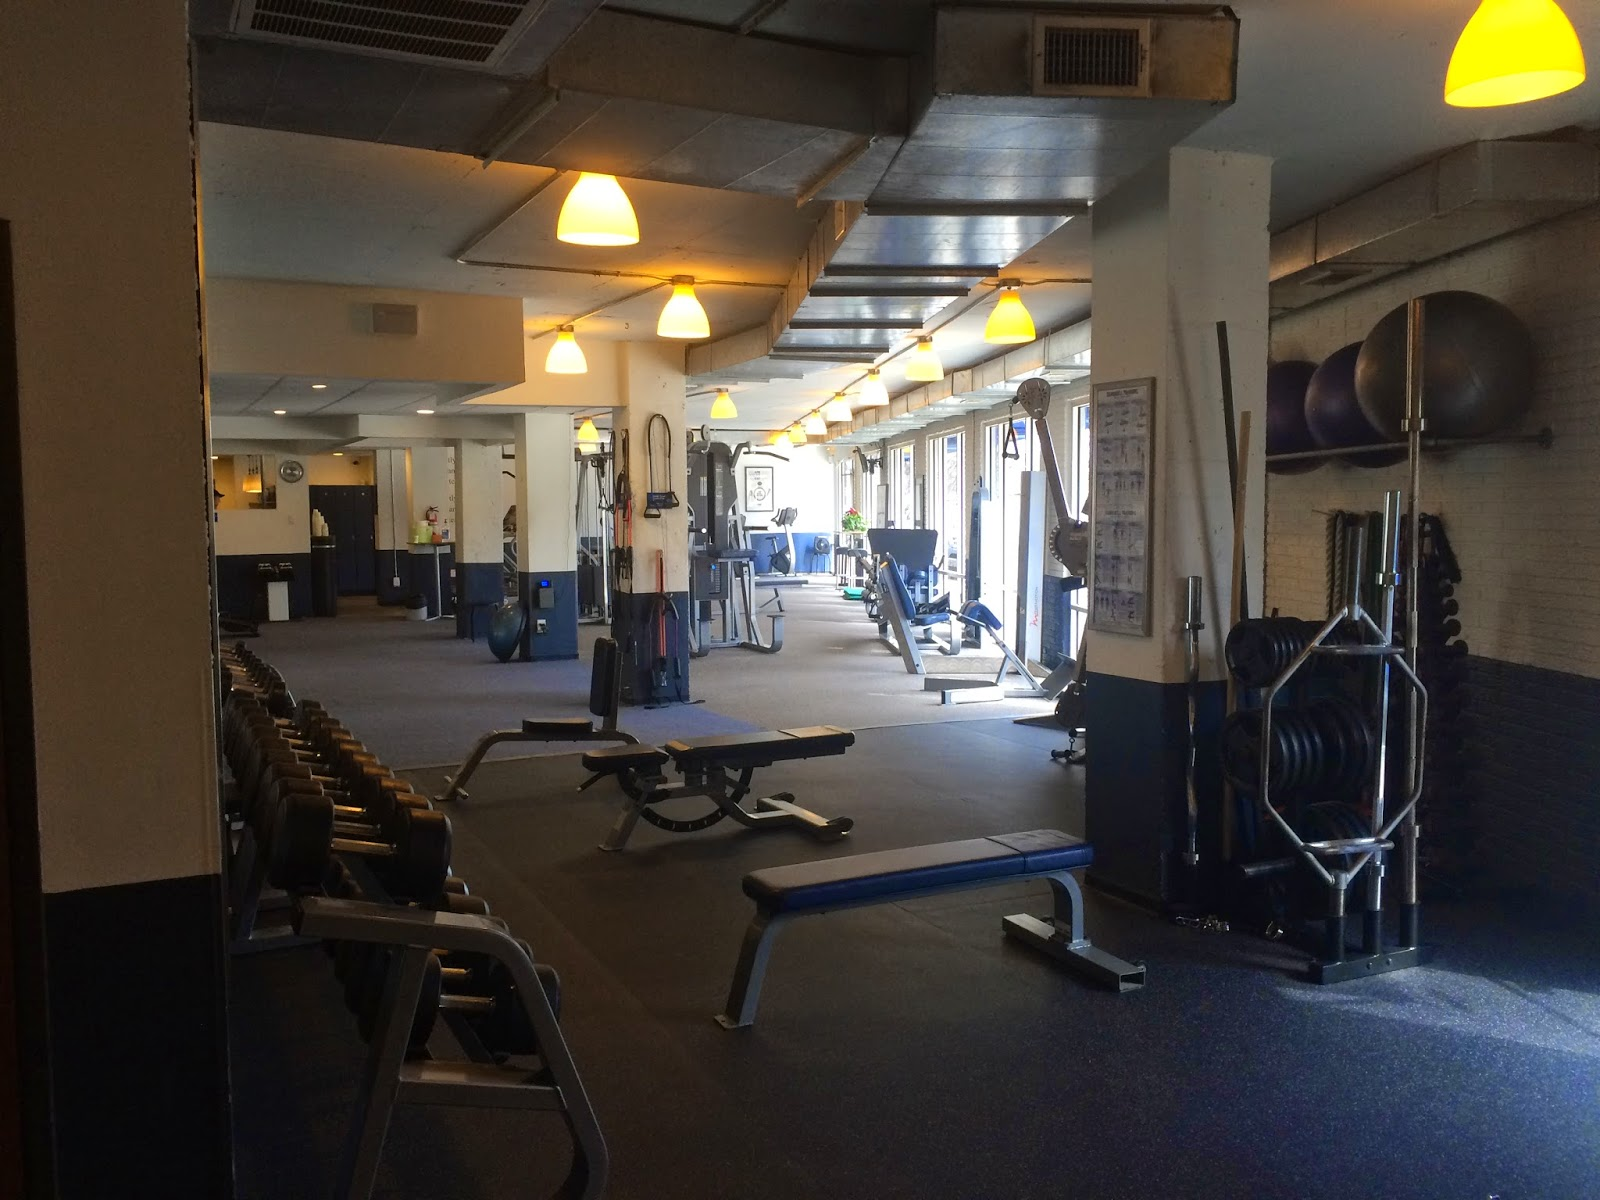 Gym surfing in dallas: clairevista vitality club